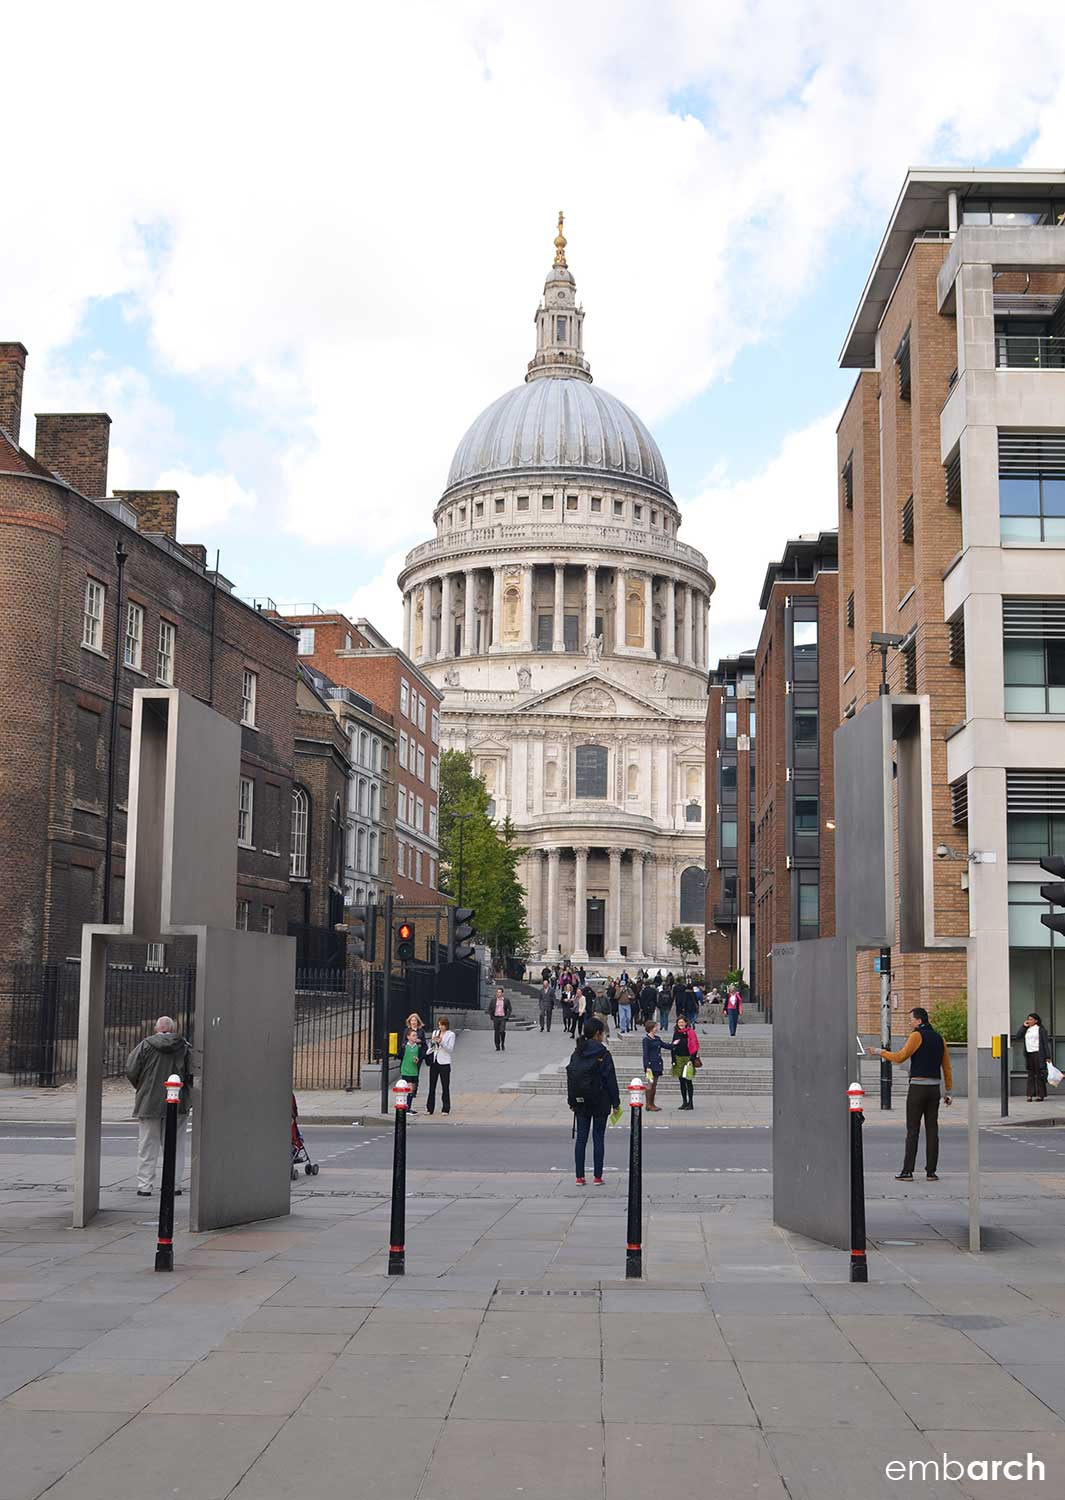 St. Paul's Cathedral - exterior view from Millennium Bridge